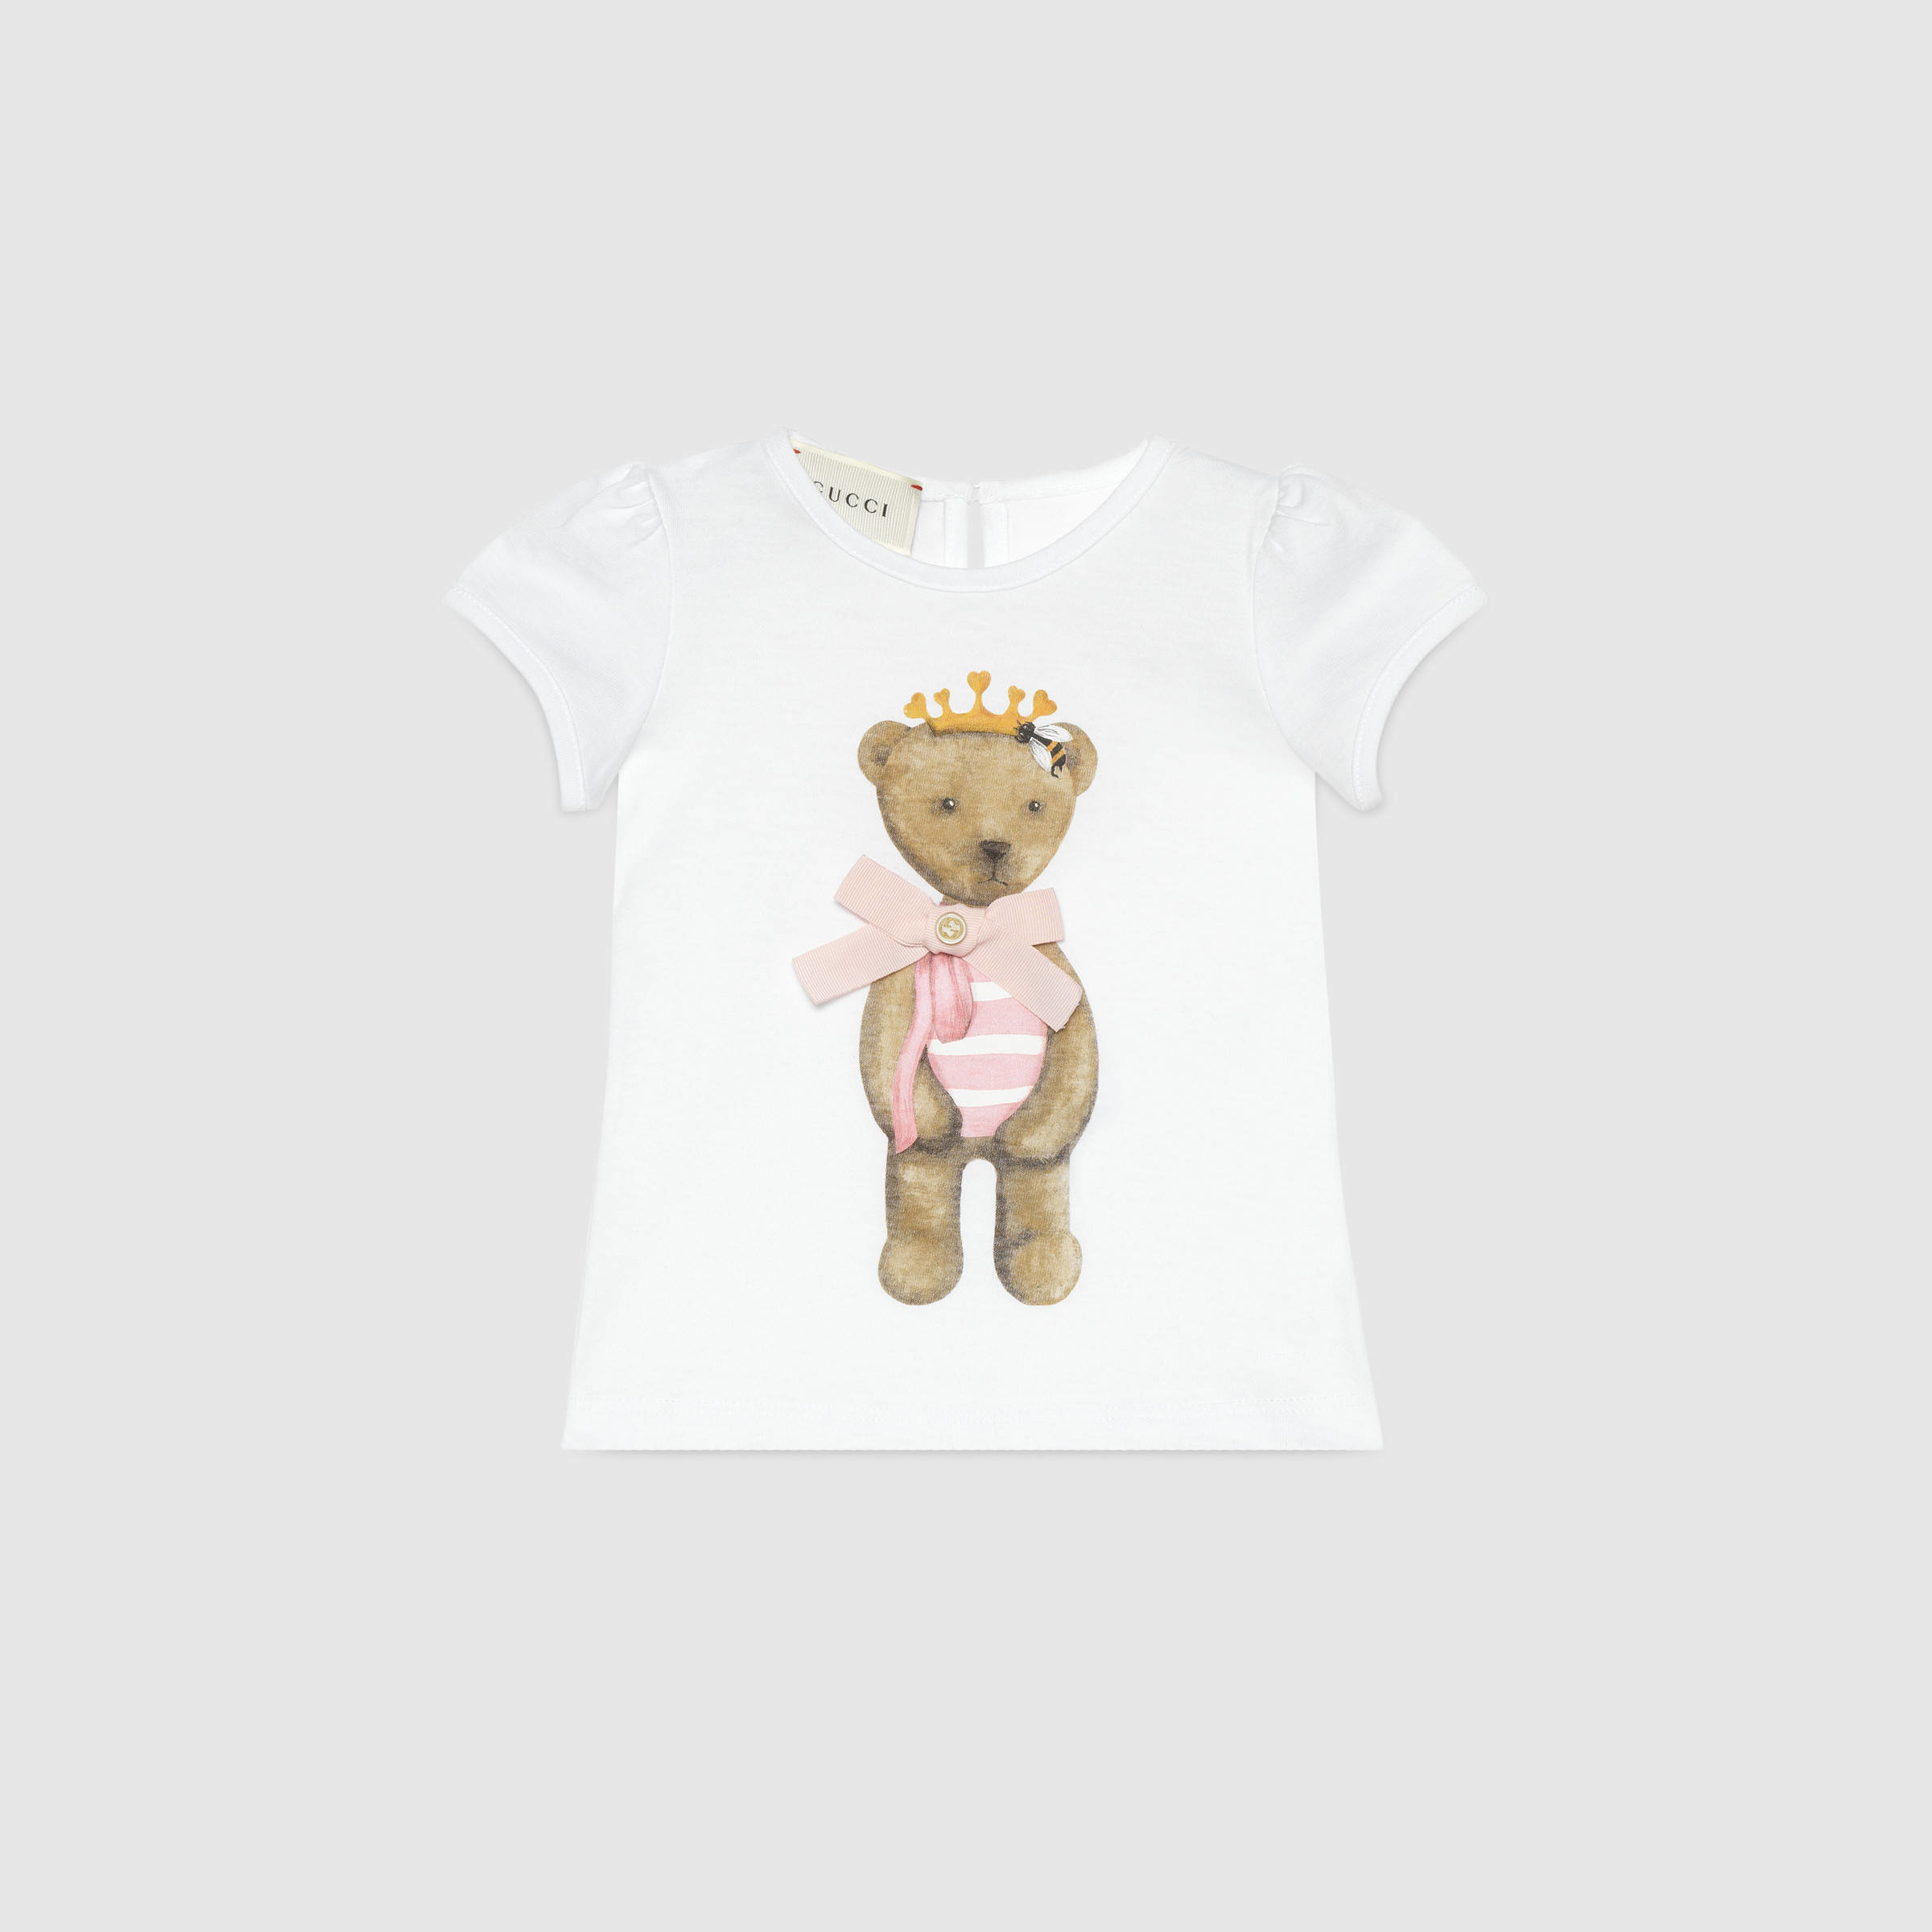 e904db9c3db05 Gucci Baby Teddy Print Cotton T-shirt in White - Lyst